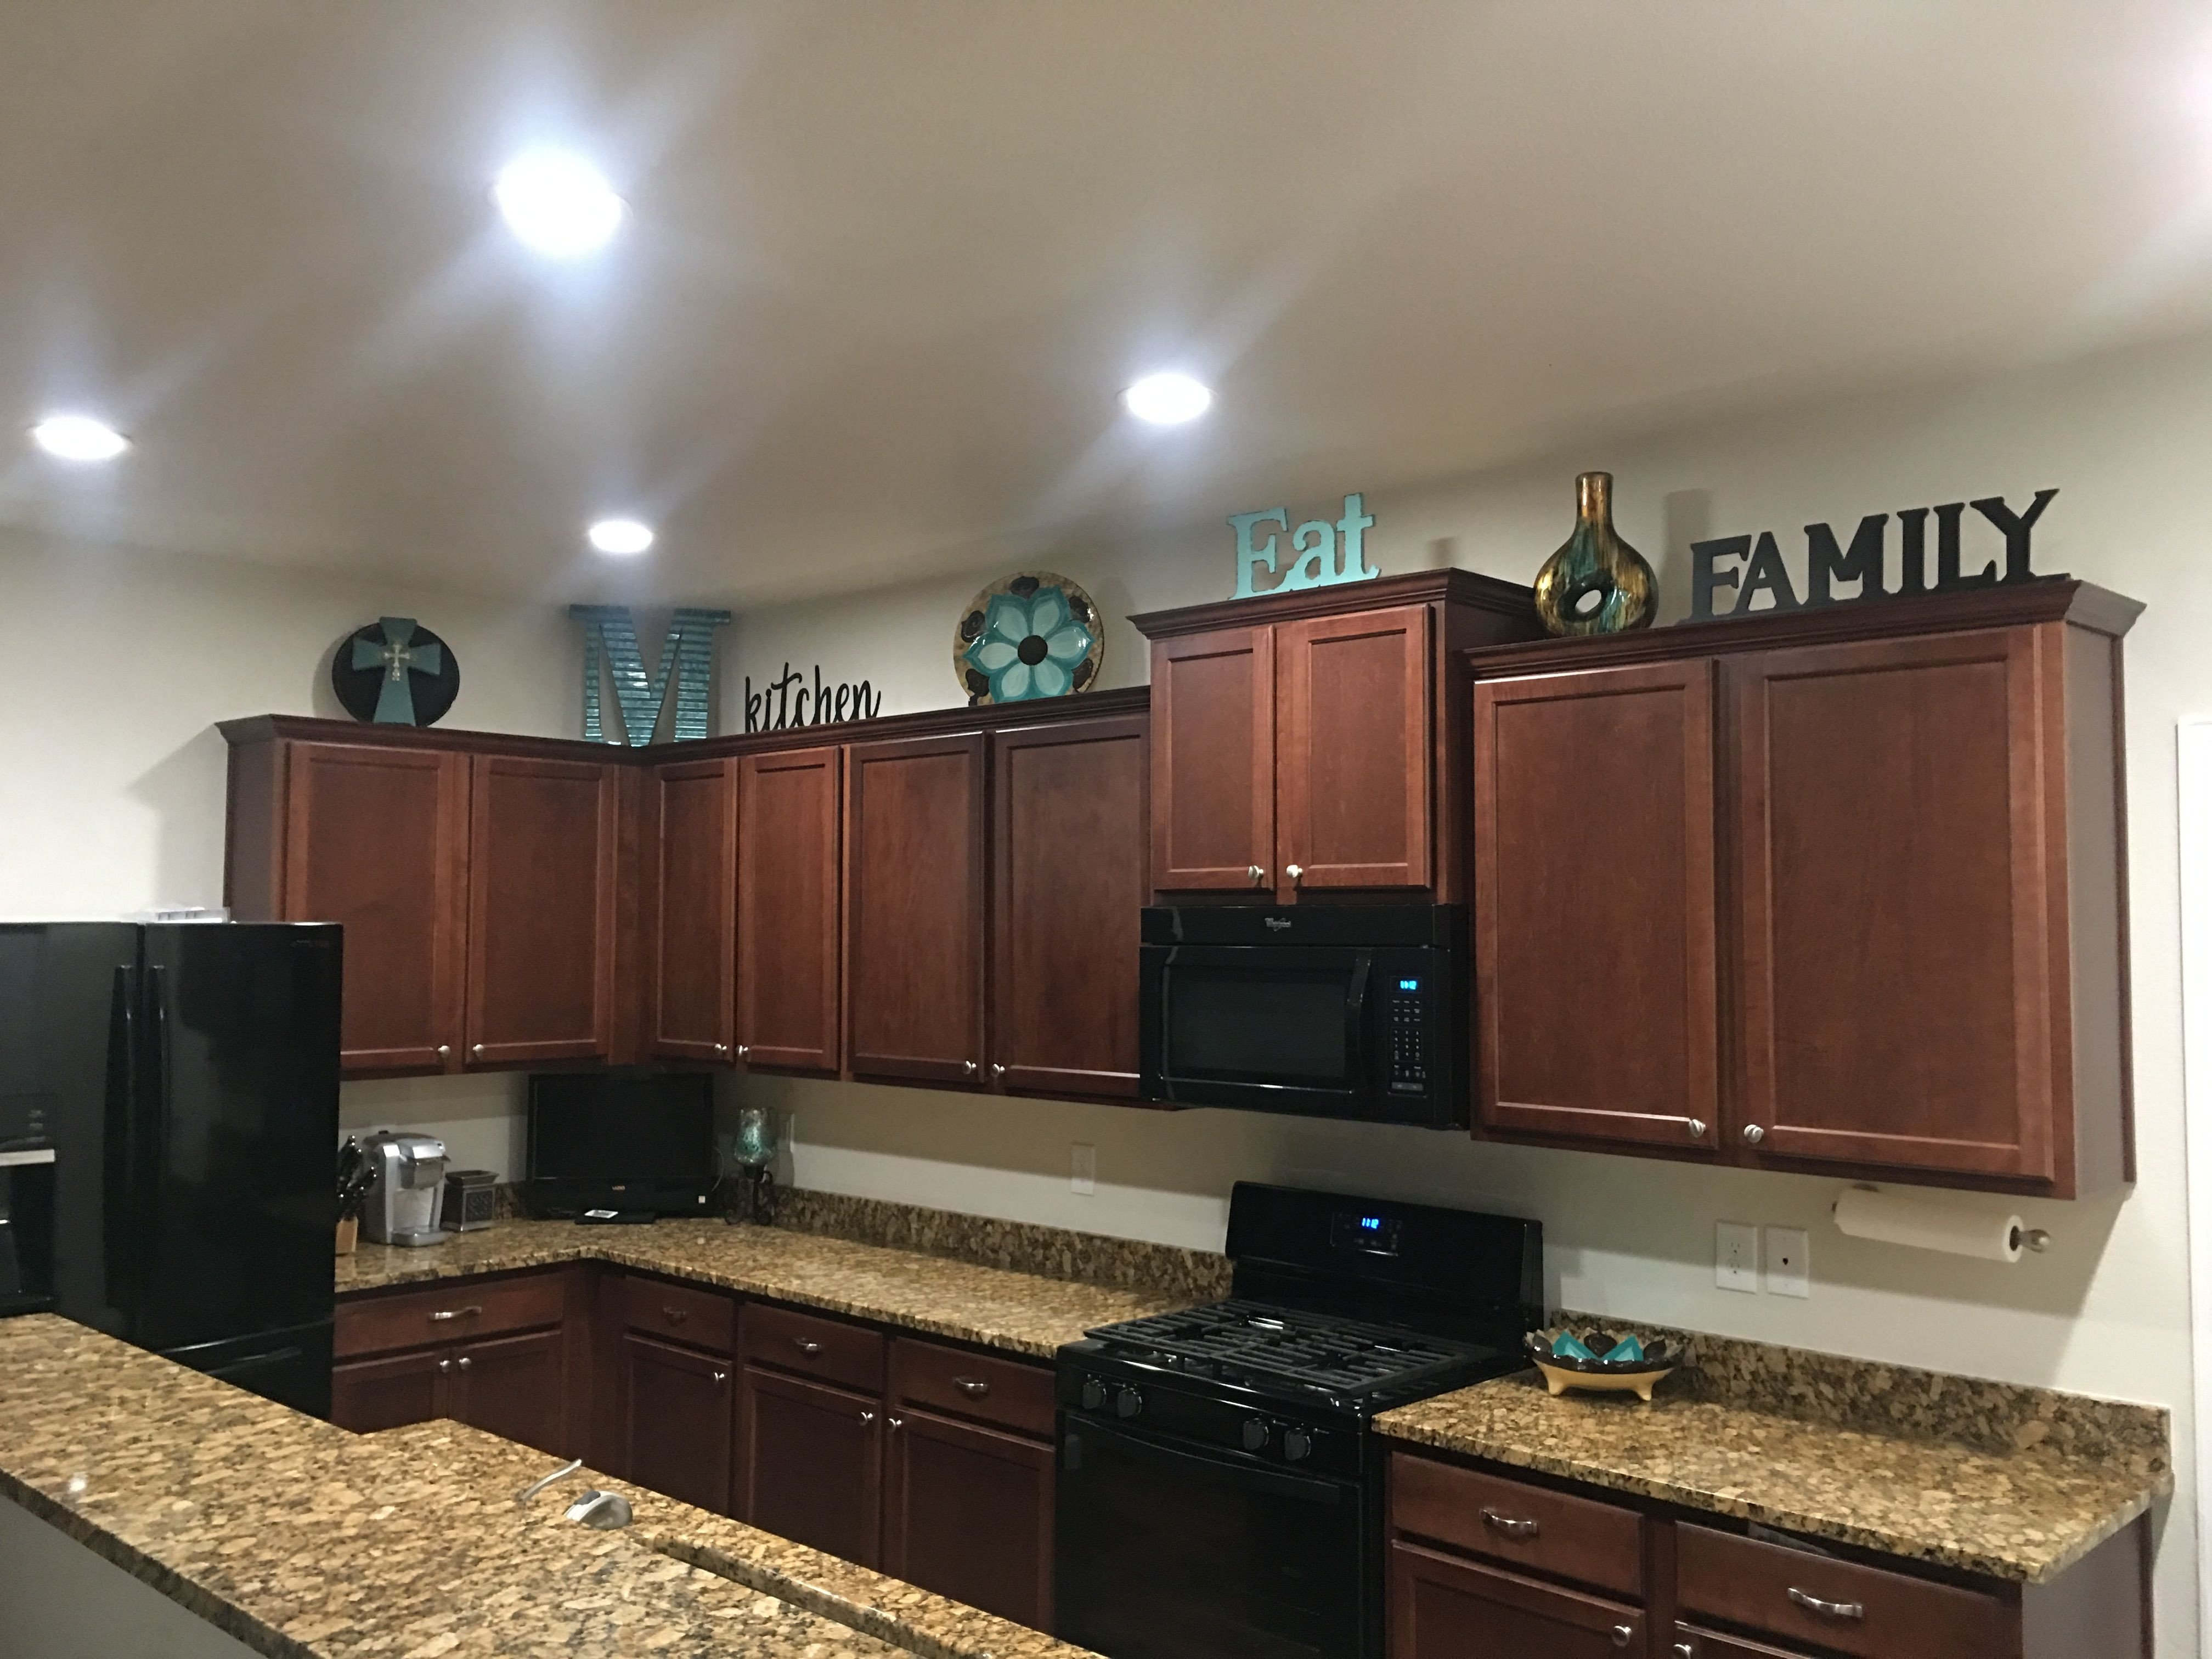 Top Of Kitchen Cabinet Decor Awesome Cabinet Decor New Home Ideas In 2019